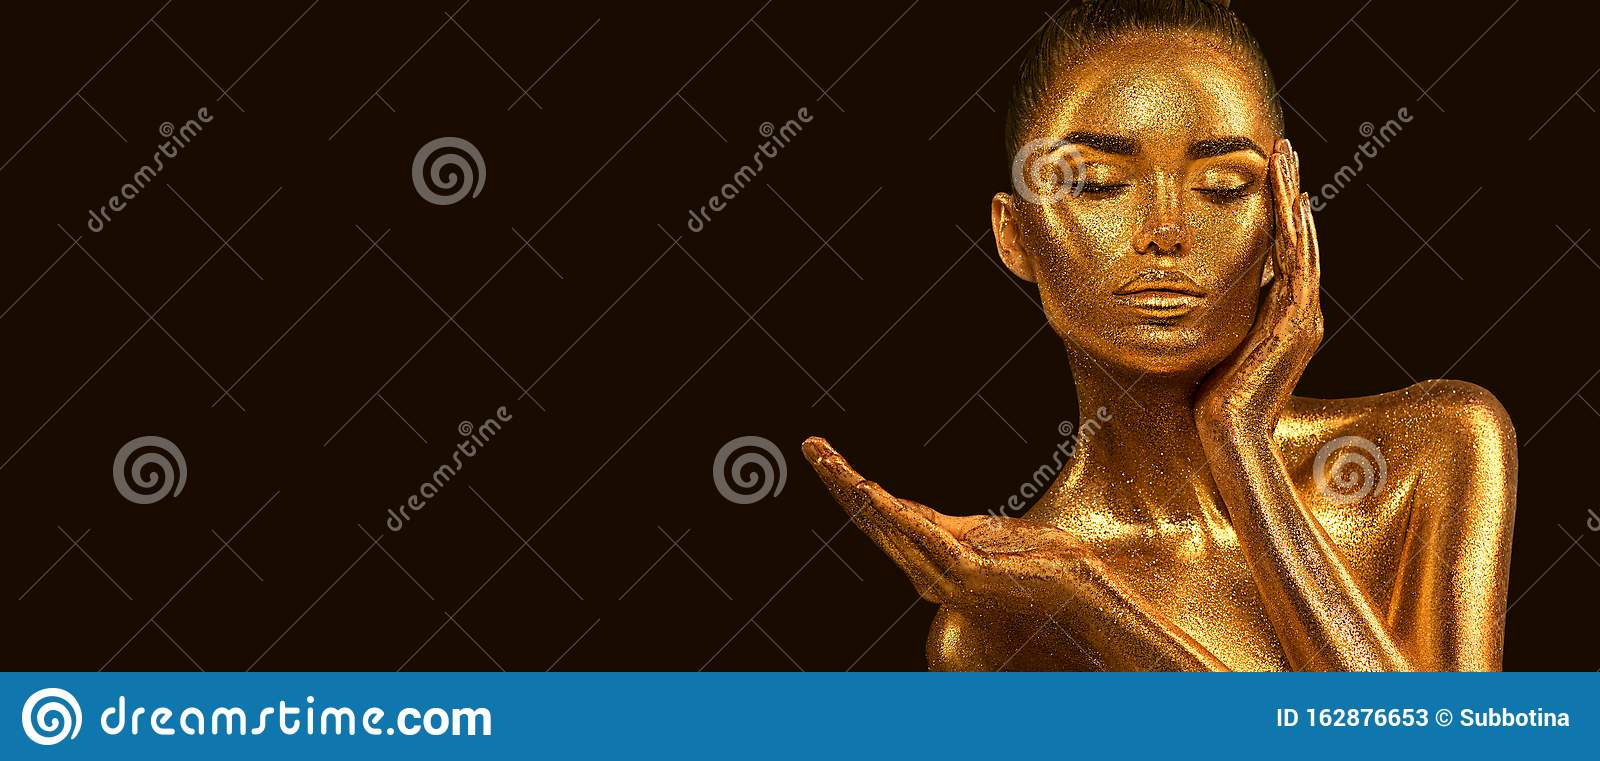 Fashion art Golden skin Woman face portrait closeup. Model girl with holiday golden Glamour shiny makeup. Sequins. Gold jewellery